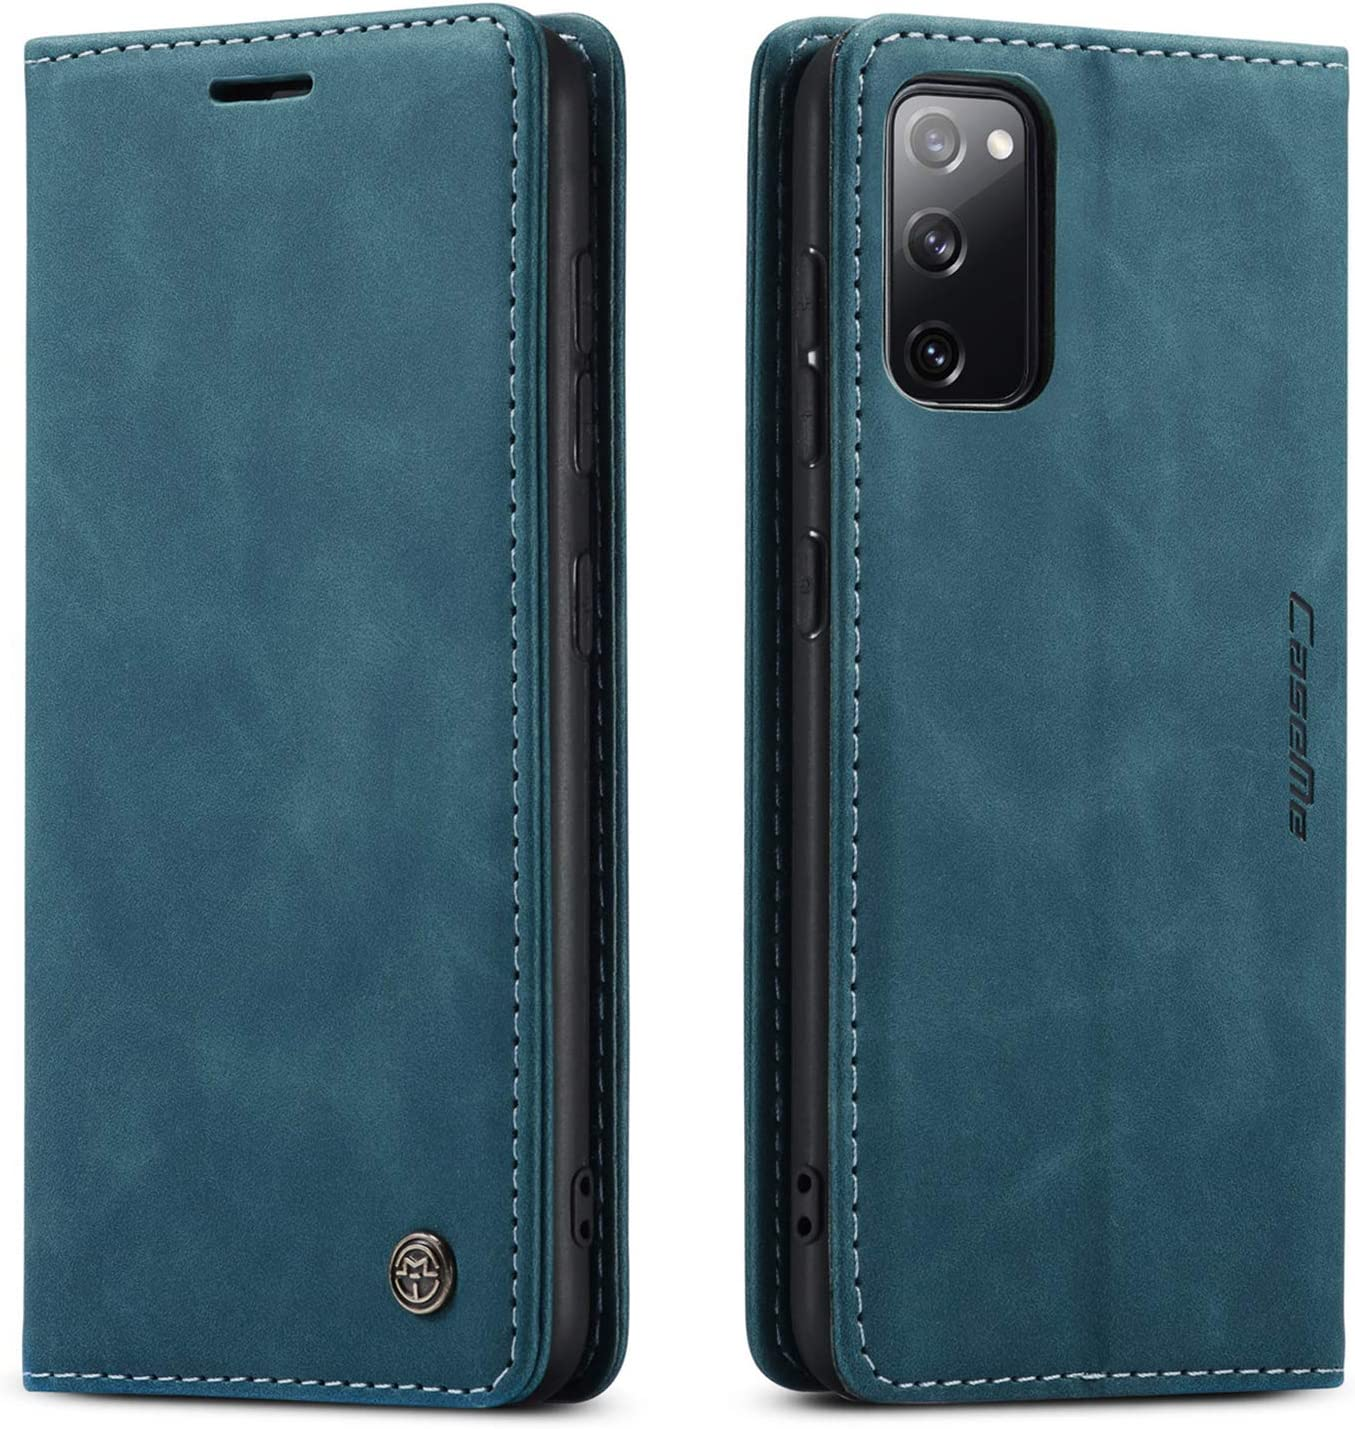 Samsung Galaxy S20 FE 5G Case,Samsung S20 FE Wallet Case with Card Holder Kickstand Magnetic,Leather Flip Case for Samsung Galaxy S20 FE 5G 6.5 Inch (Blue)